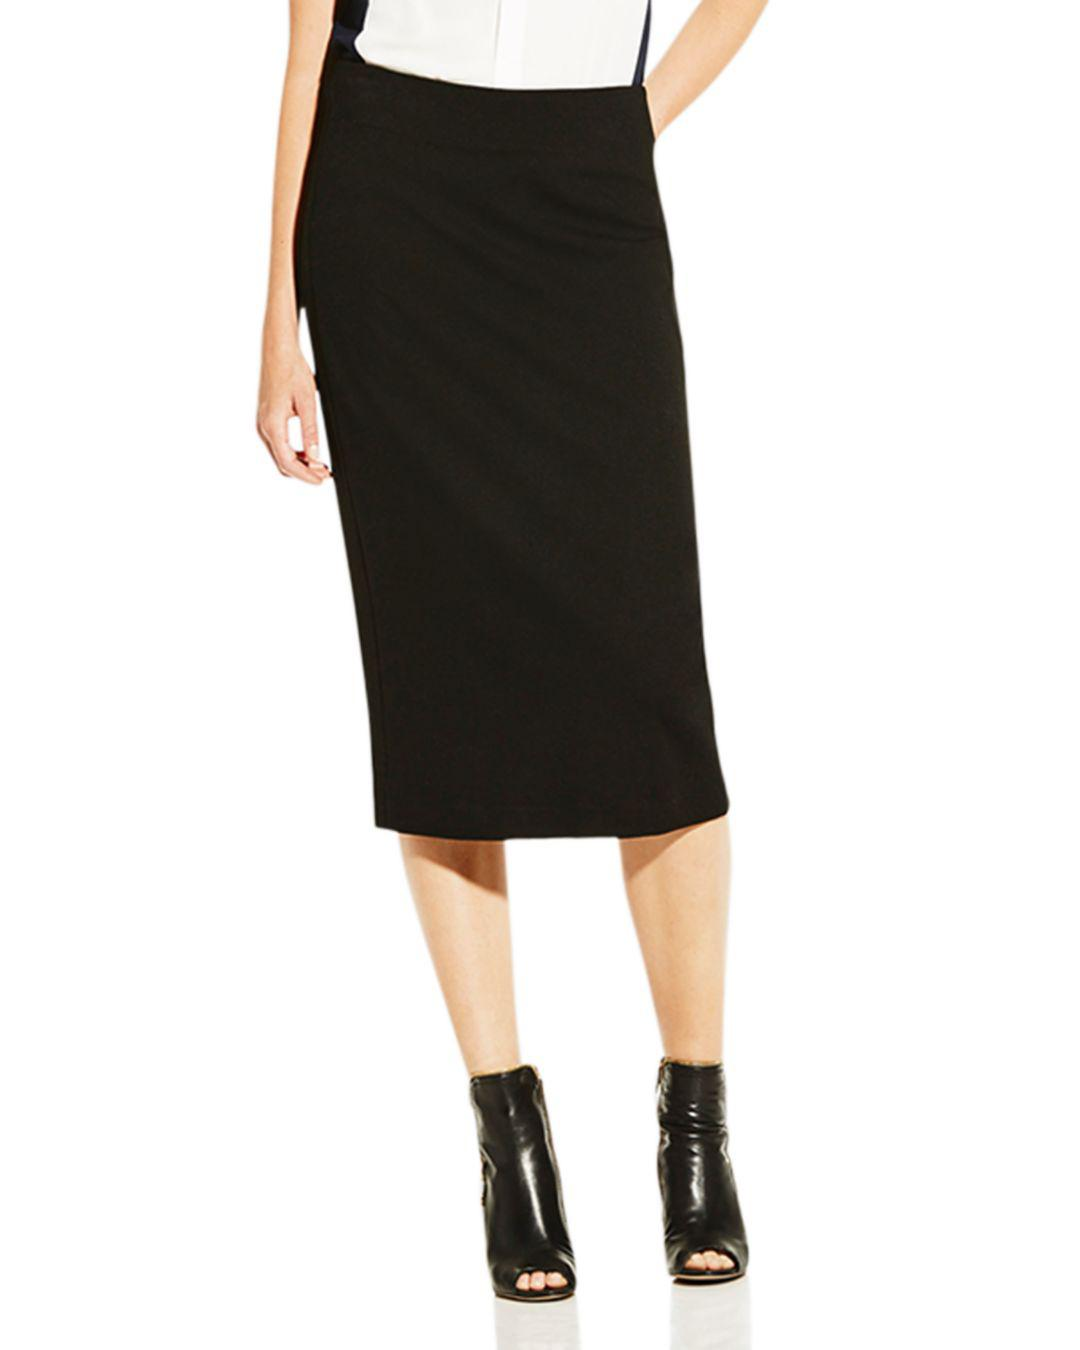 5e23ded845 Lyst - Vince Camuto Petites Ponte Knit Pencil Skirt in Black